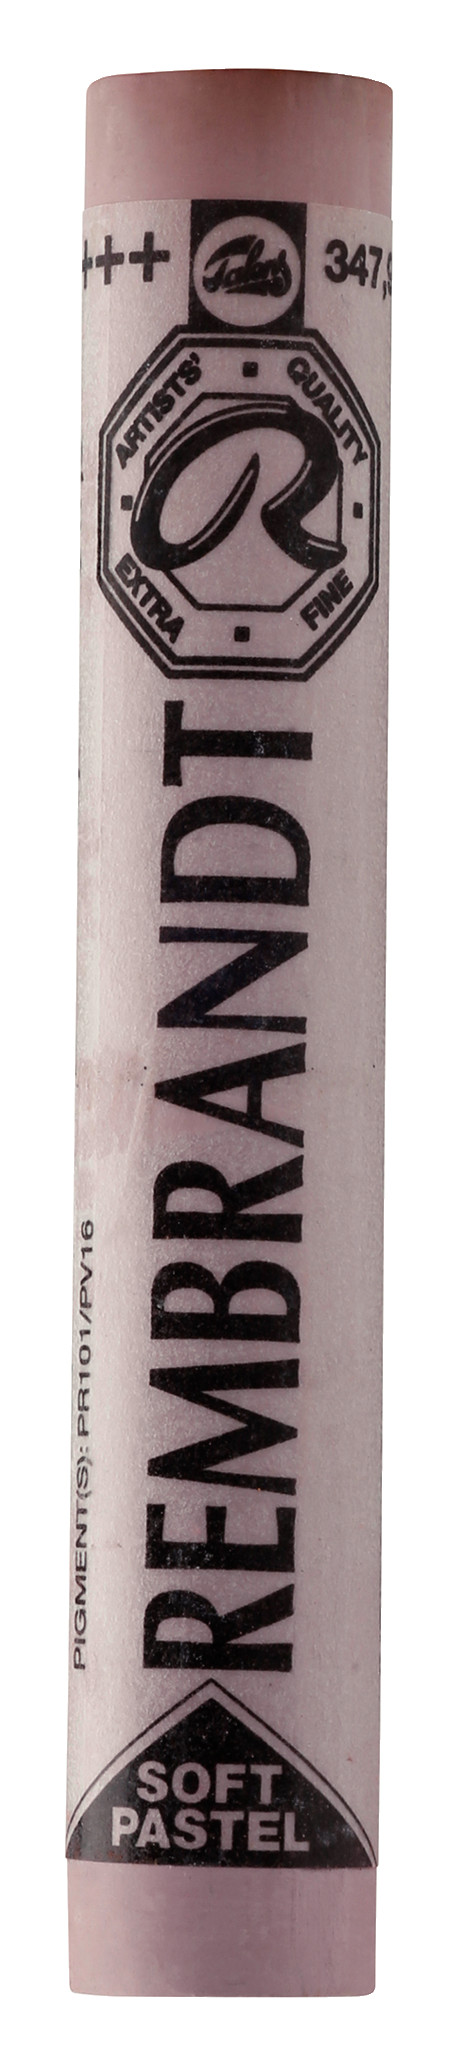 Rembrandt Soft Pastel Round Full Stick Indian Red(9) (347.9)